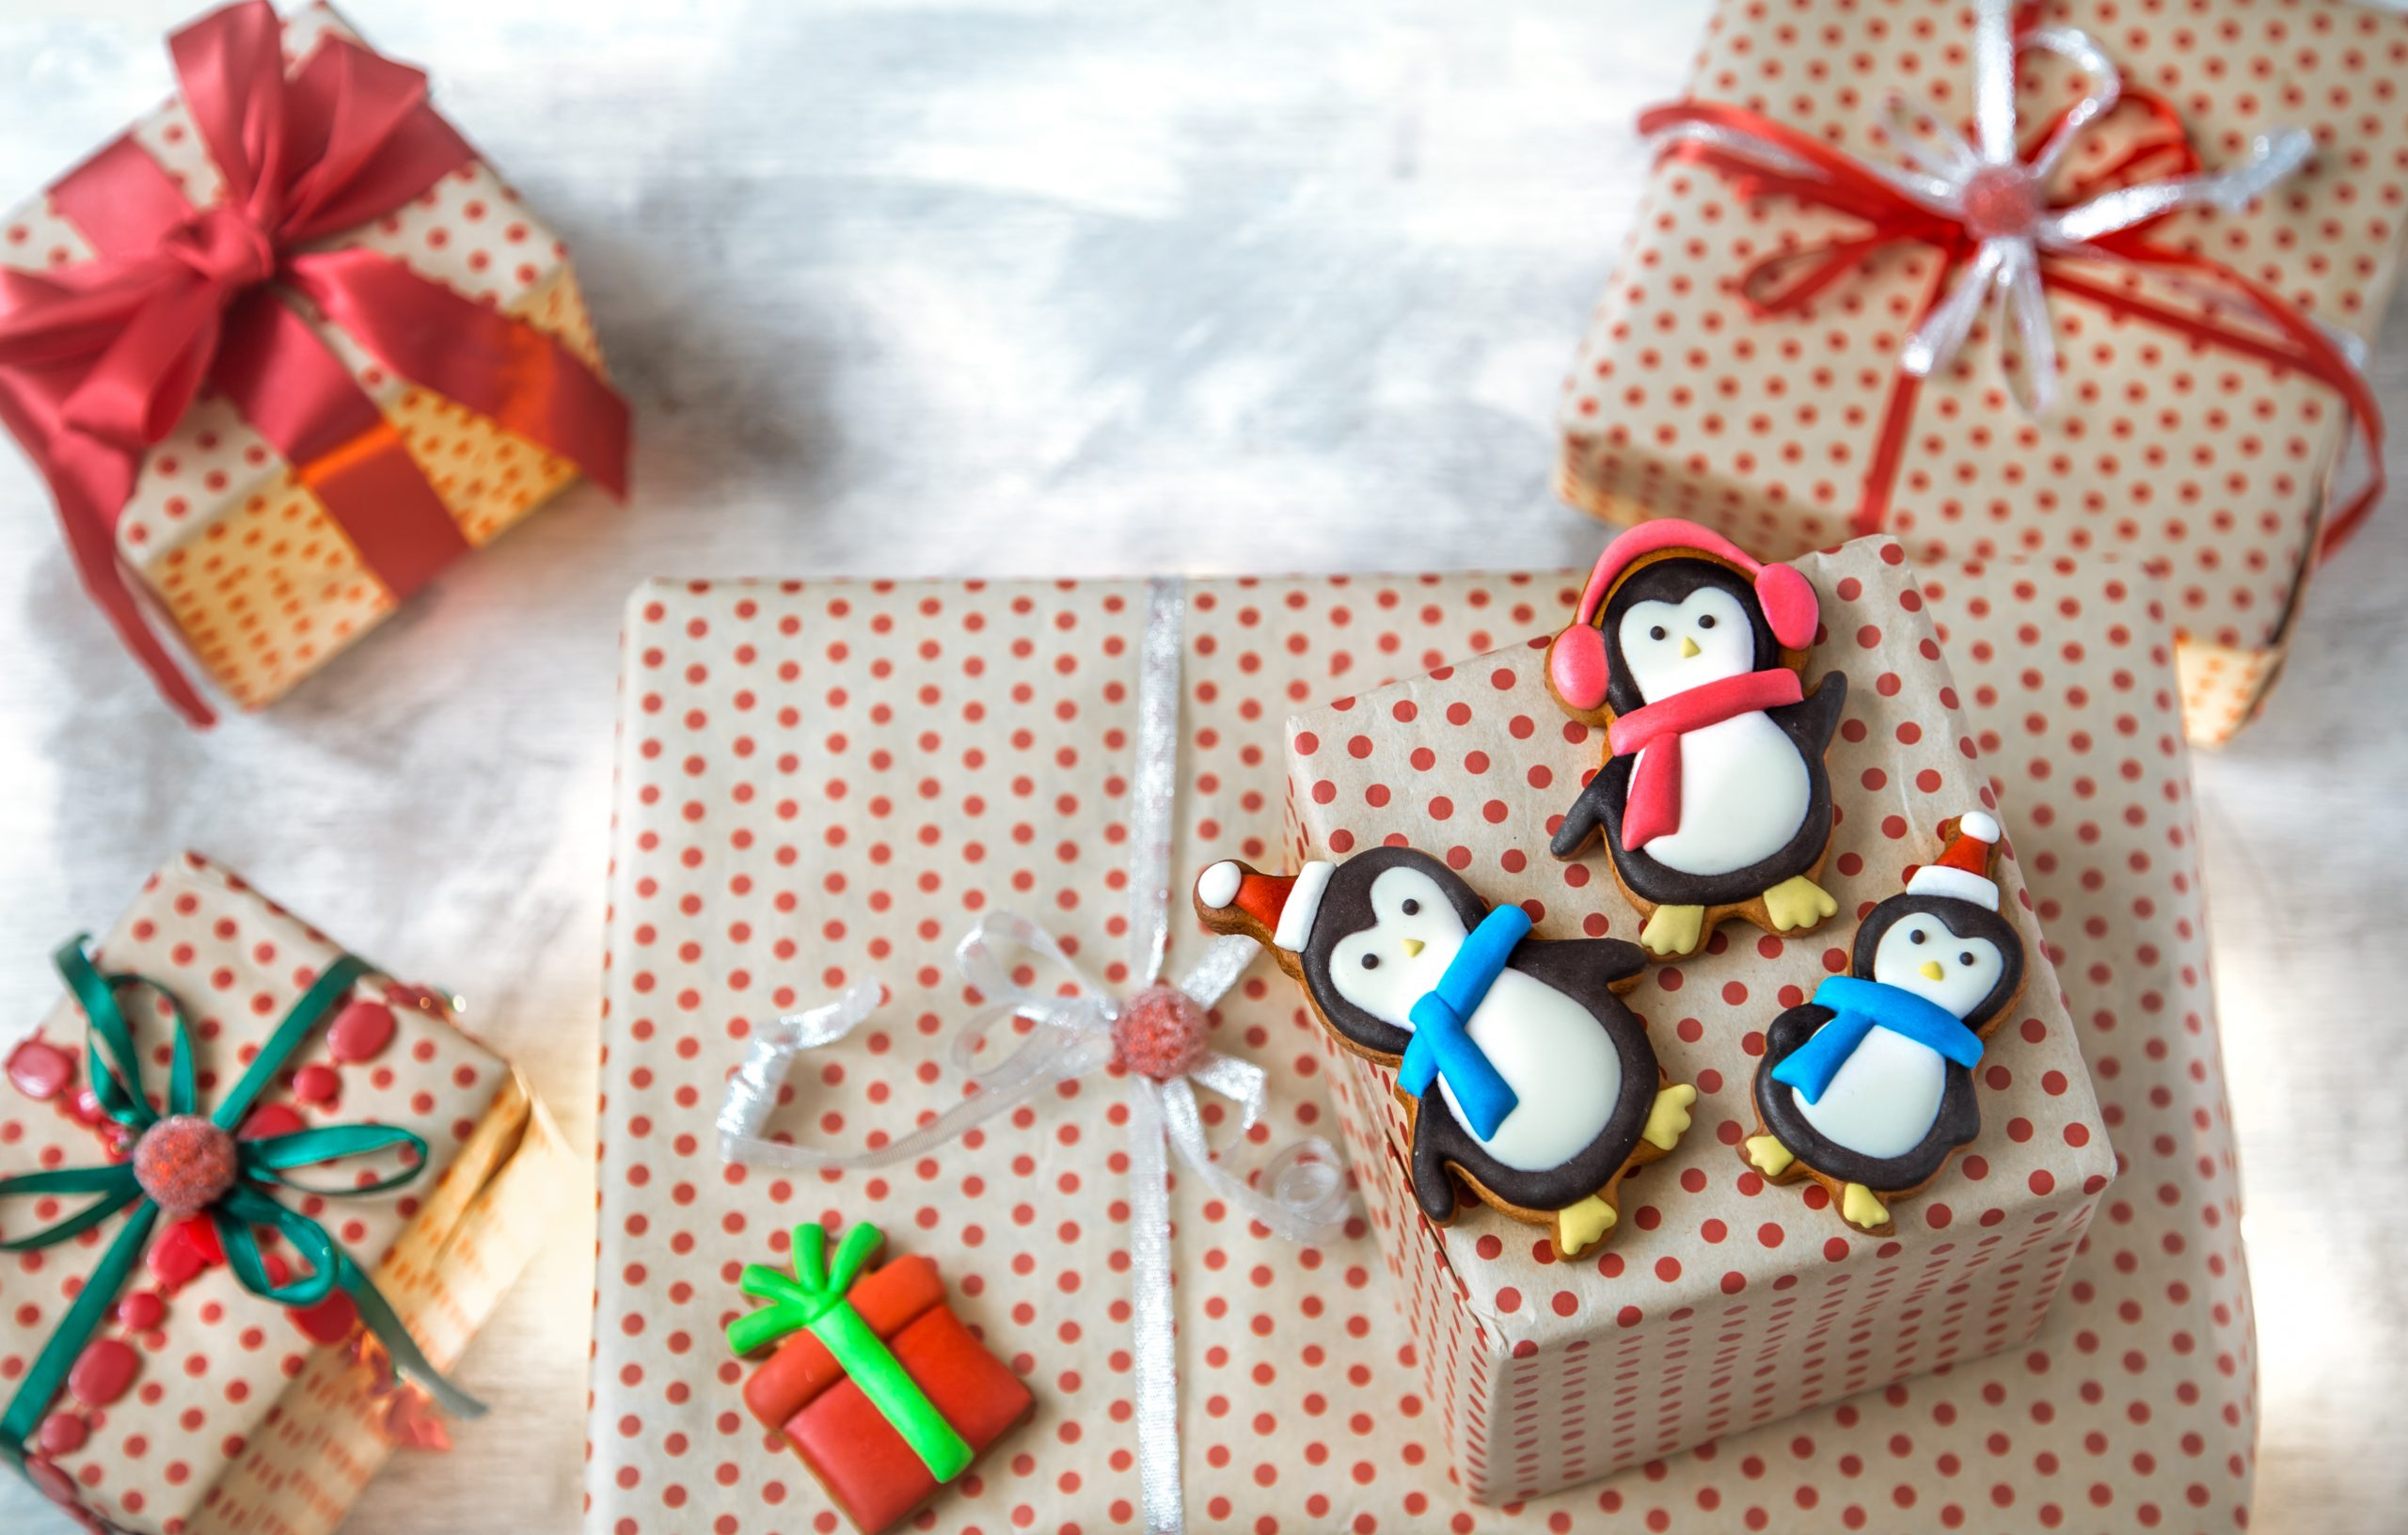 New Research Reveals 84% of eCommerce Providers Consider the 2020 Holiday Season Essential to Recovery or Survival